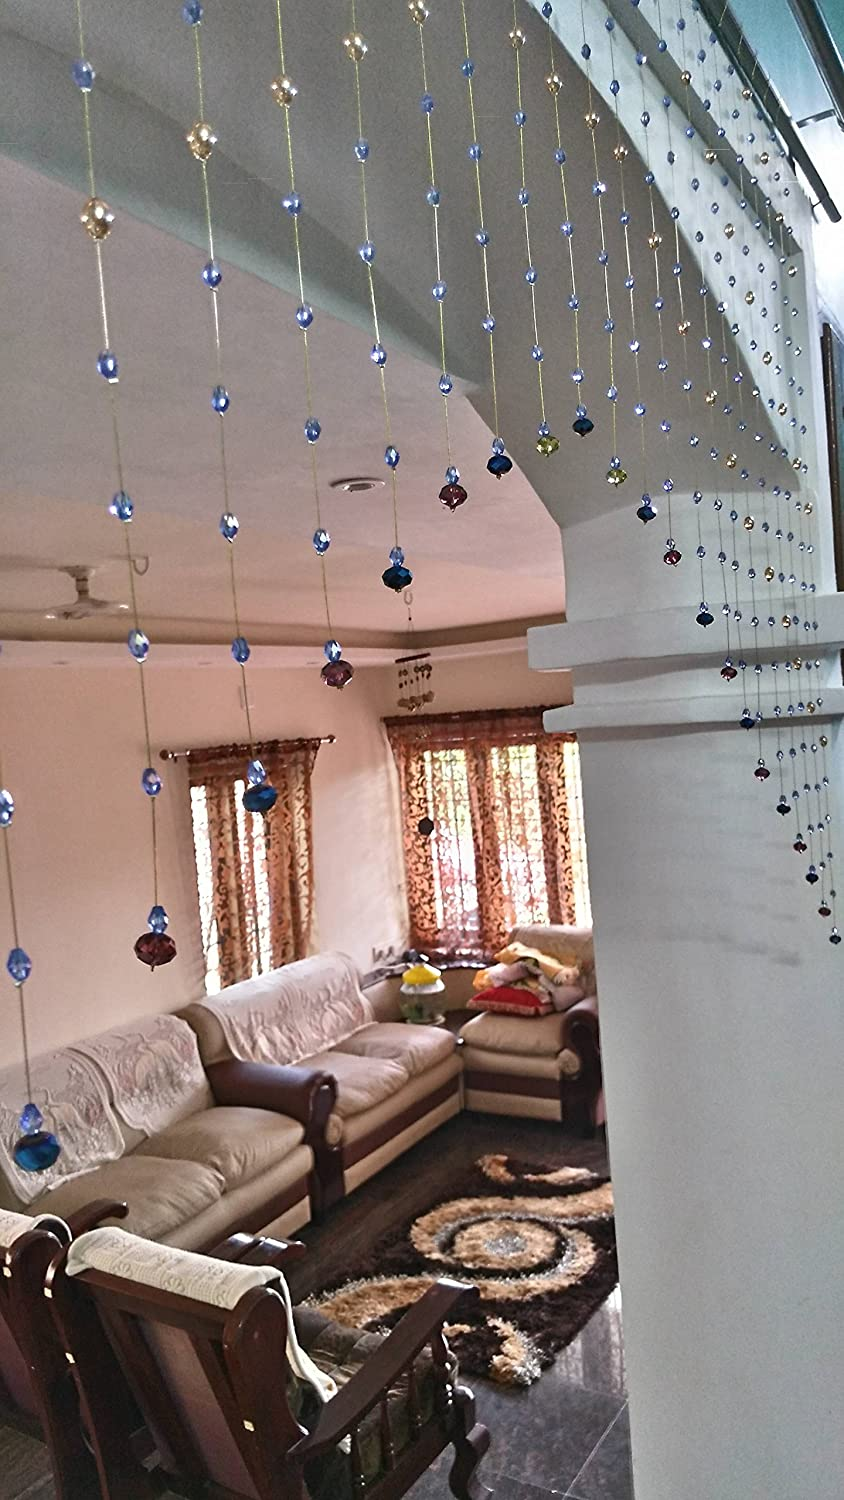 Buy Crystal Bead Curtain Blue And Gold Arch Shaped For Room Partition Door Living Room Online At Low Prices In India Amazon In